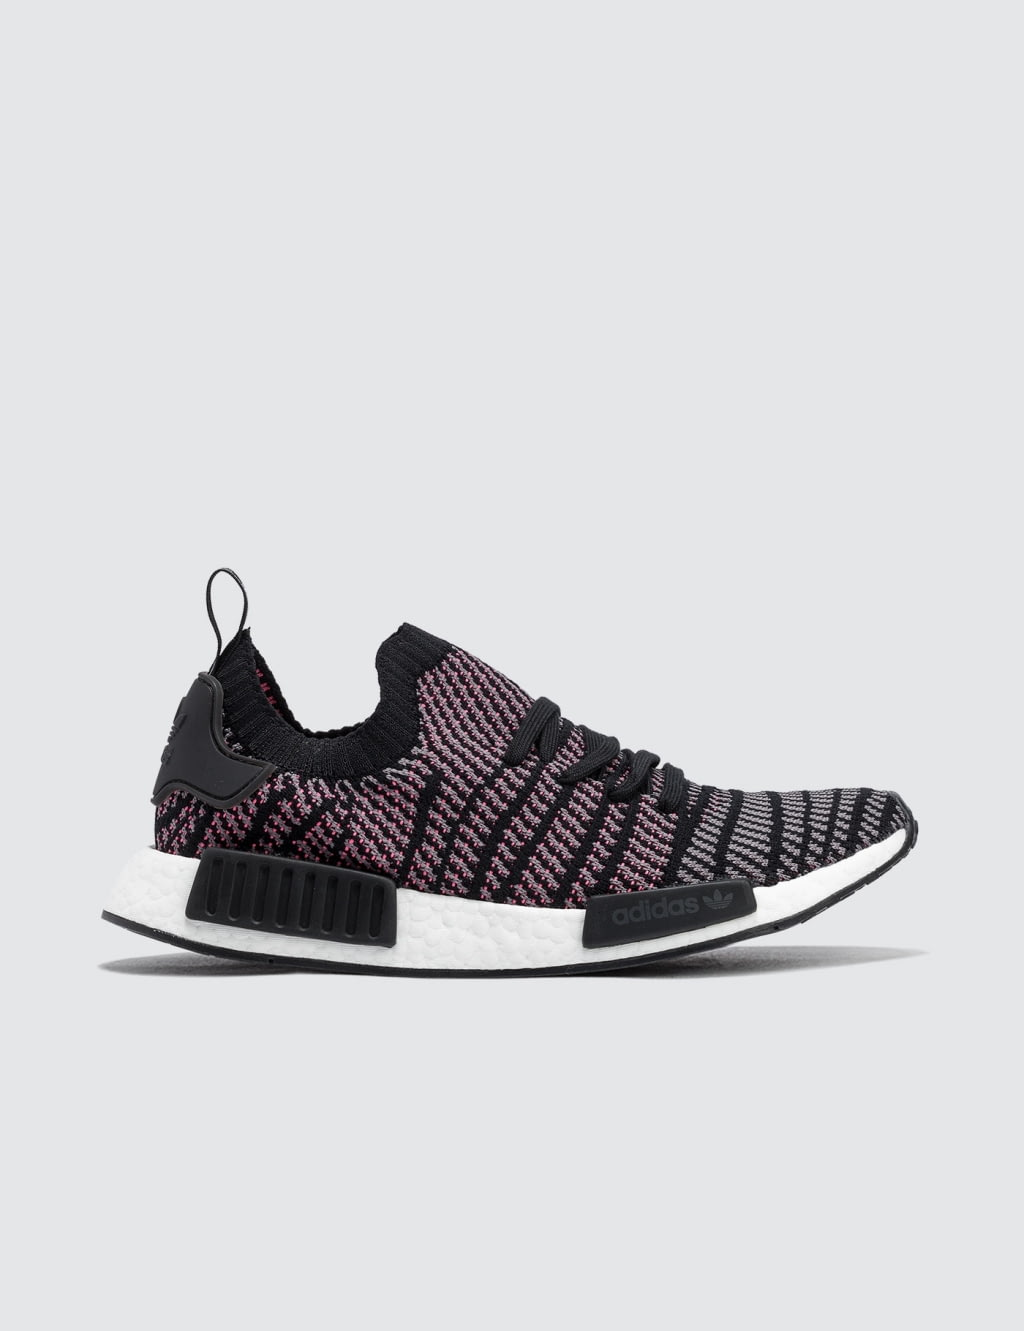 RnP Kicks] Adidas NMD R2 PrimeKnit (Collegiate Navy Blue Red